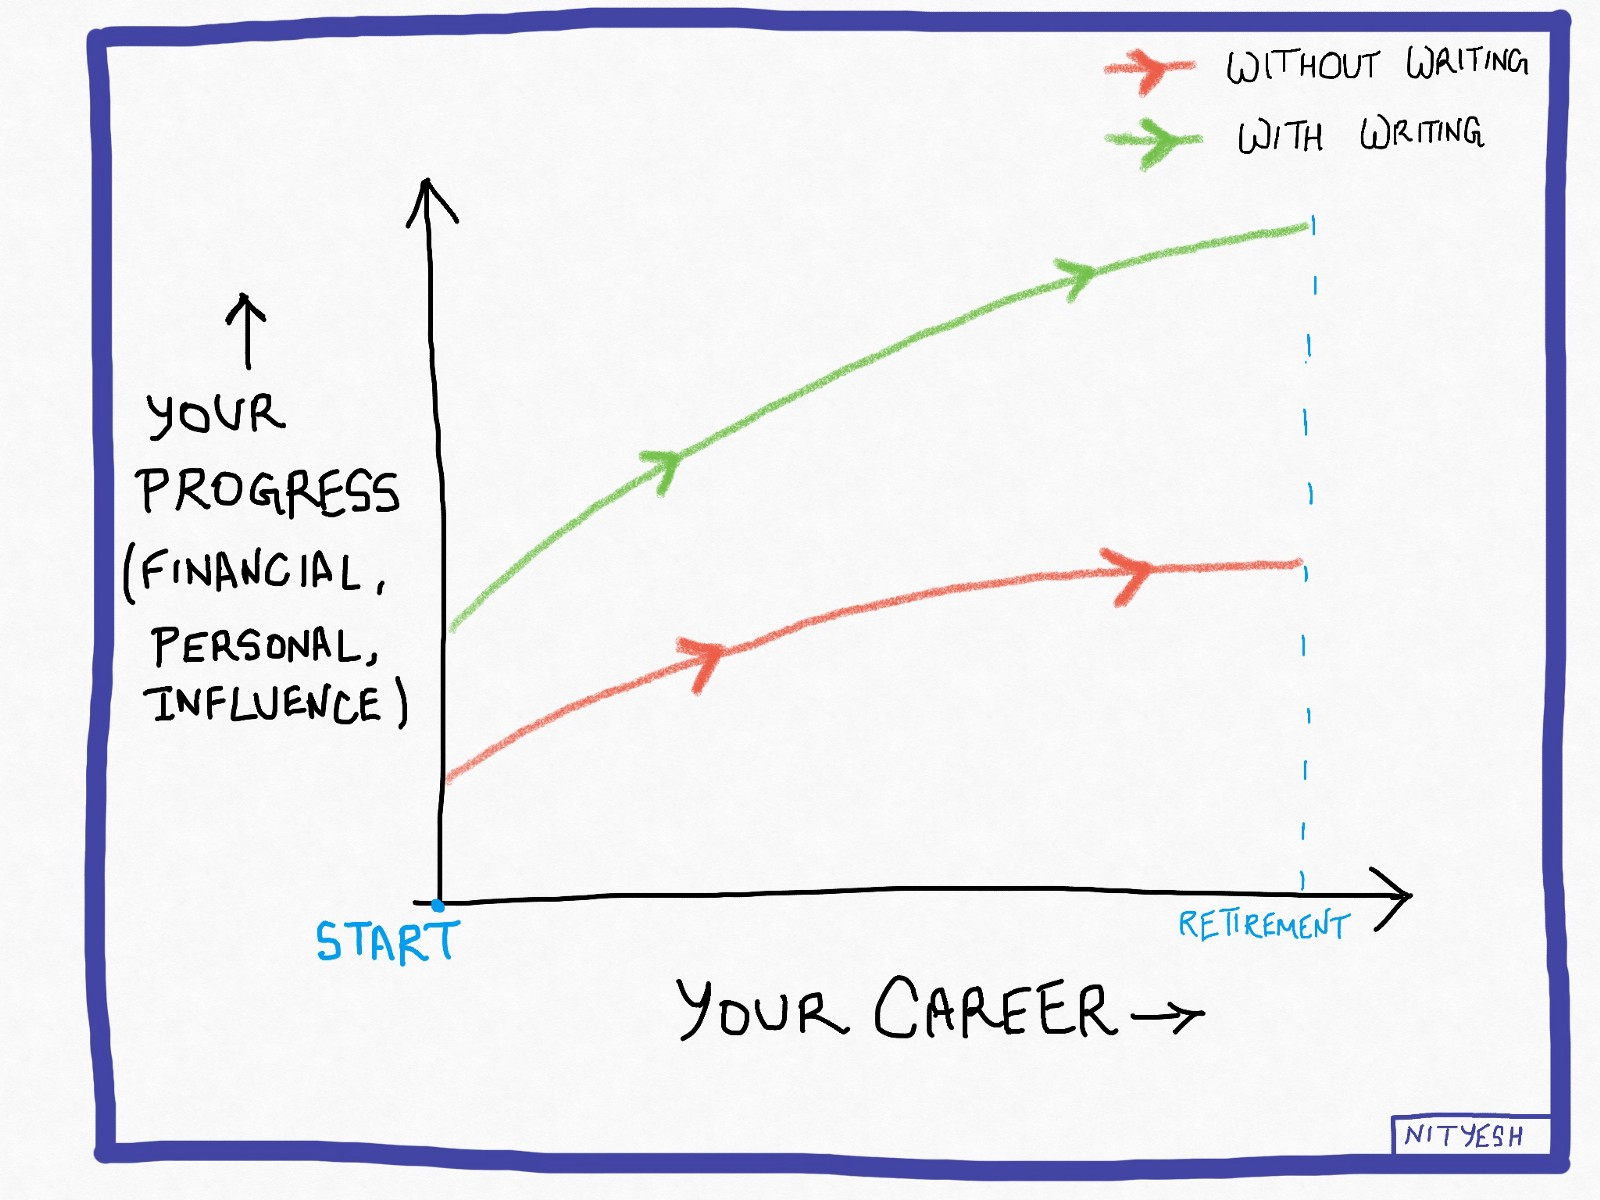 Line graph that shows career with writing and without writing